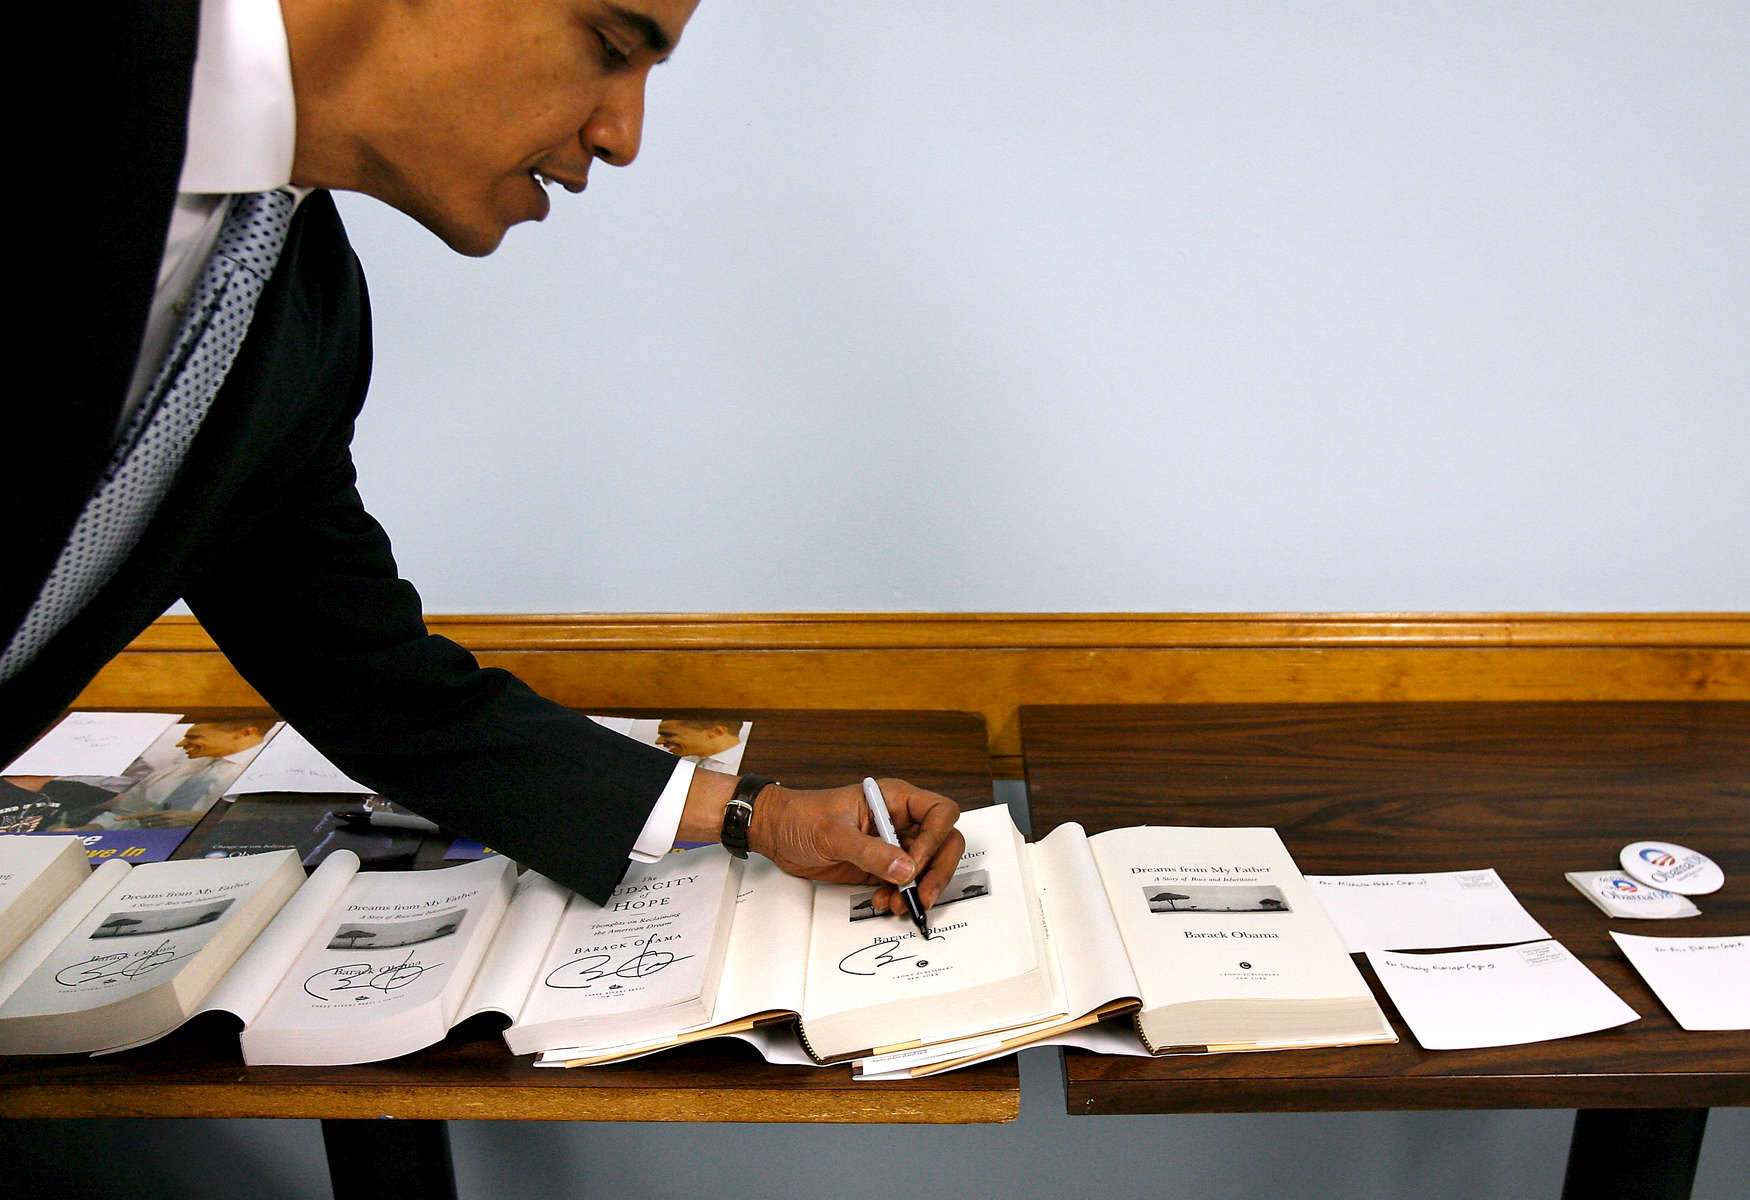 Presidential candidate Barack Obama autographs a row of books laid out by campaign staffers for supporters after an event at the Rochester American Legion Post No. 4. in December 2007.